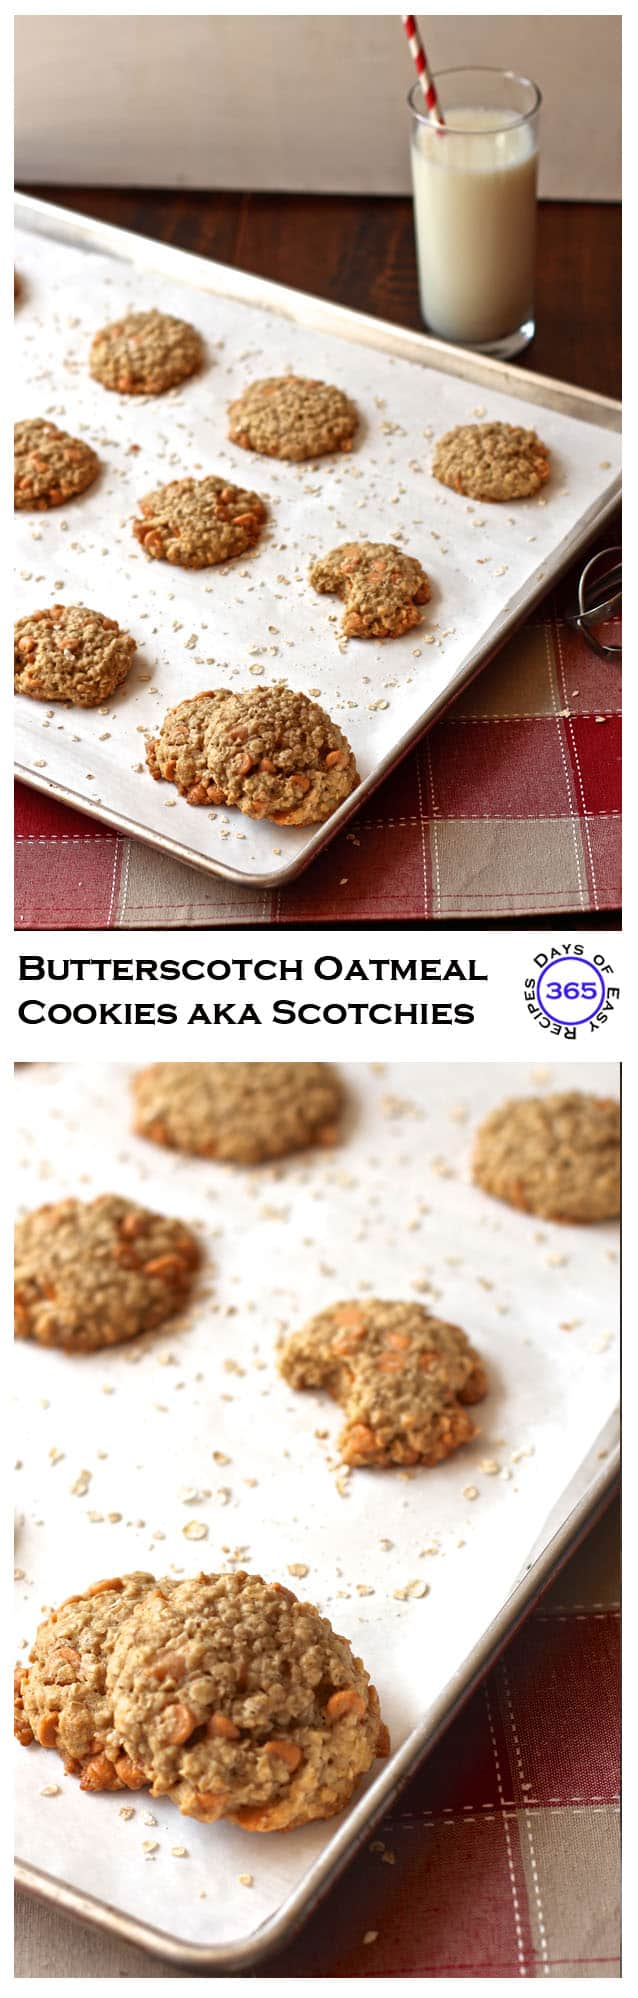 Butterscotch Oatmeal Cookies. Some people call them Scotchies. I call them delicious. | 365 Days of Easy Recipes